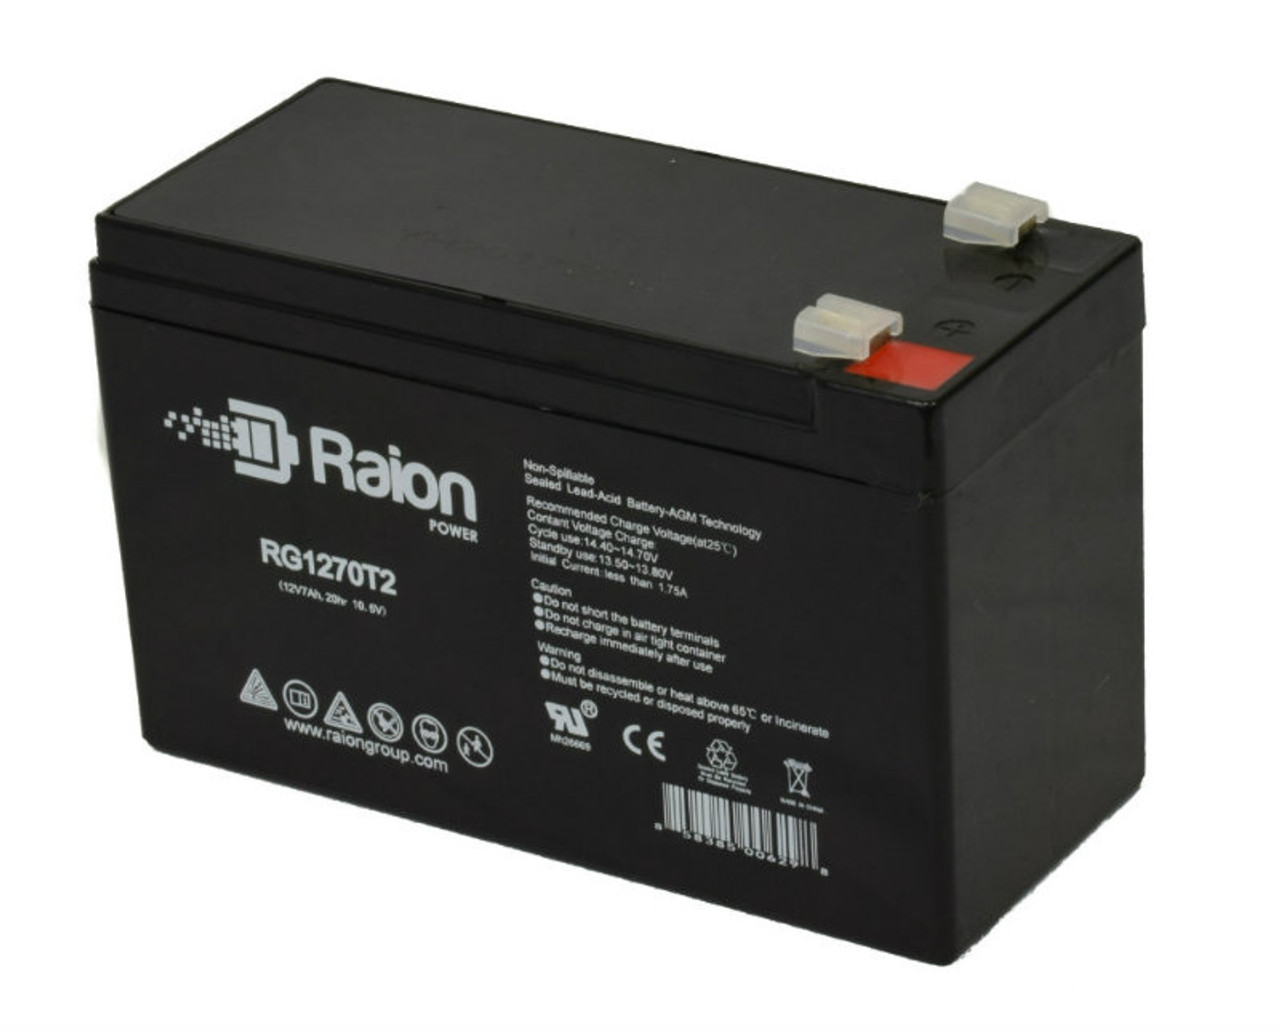 Raion Power 12V 7Ah SLA Battery With T1 Terminals For Excel XL1270